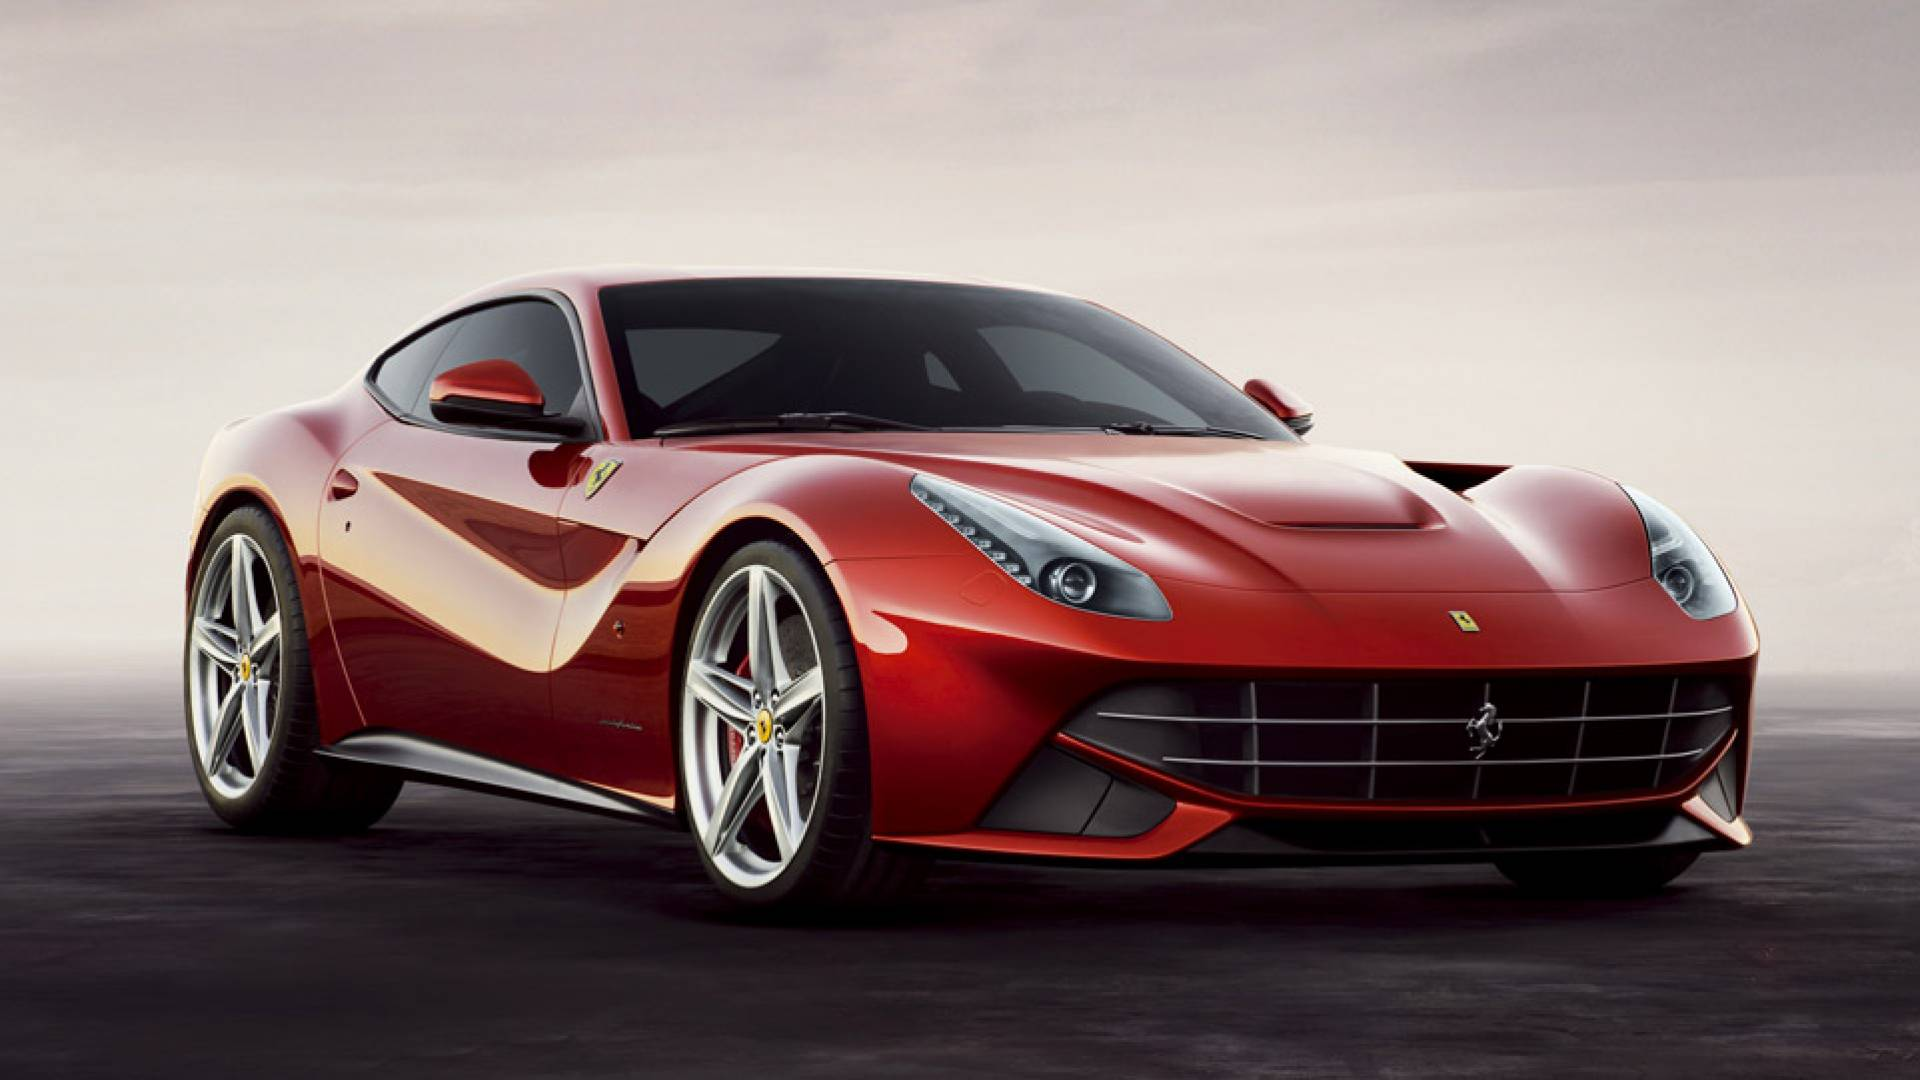 ferrari f12 berlinetta precios noticias prueba ficha t cnica y fotos diariomotor. Black Bedroom Furniture Sets. Home Design Ideas